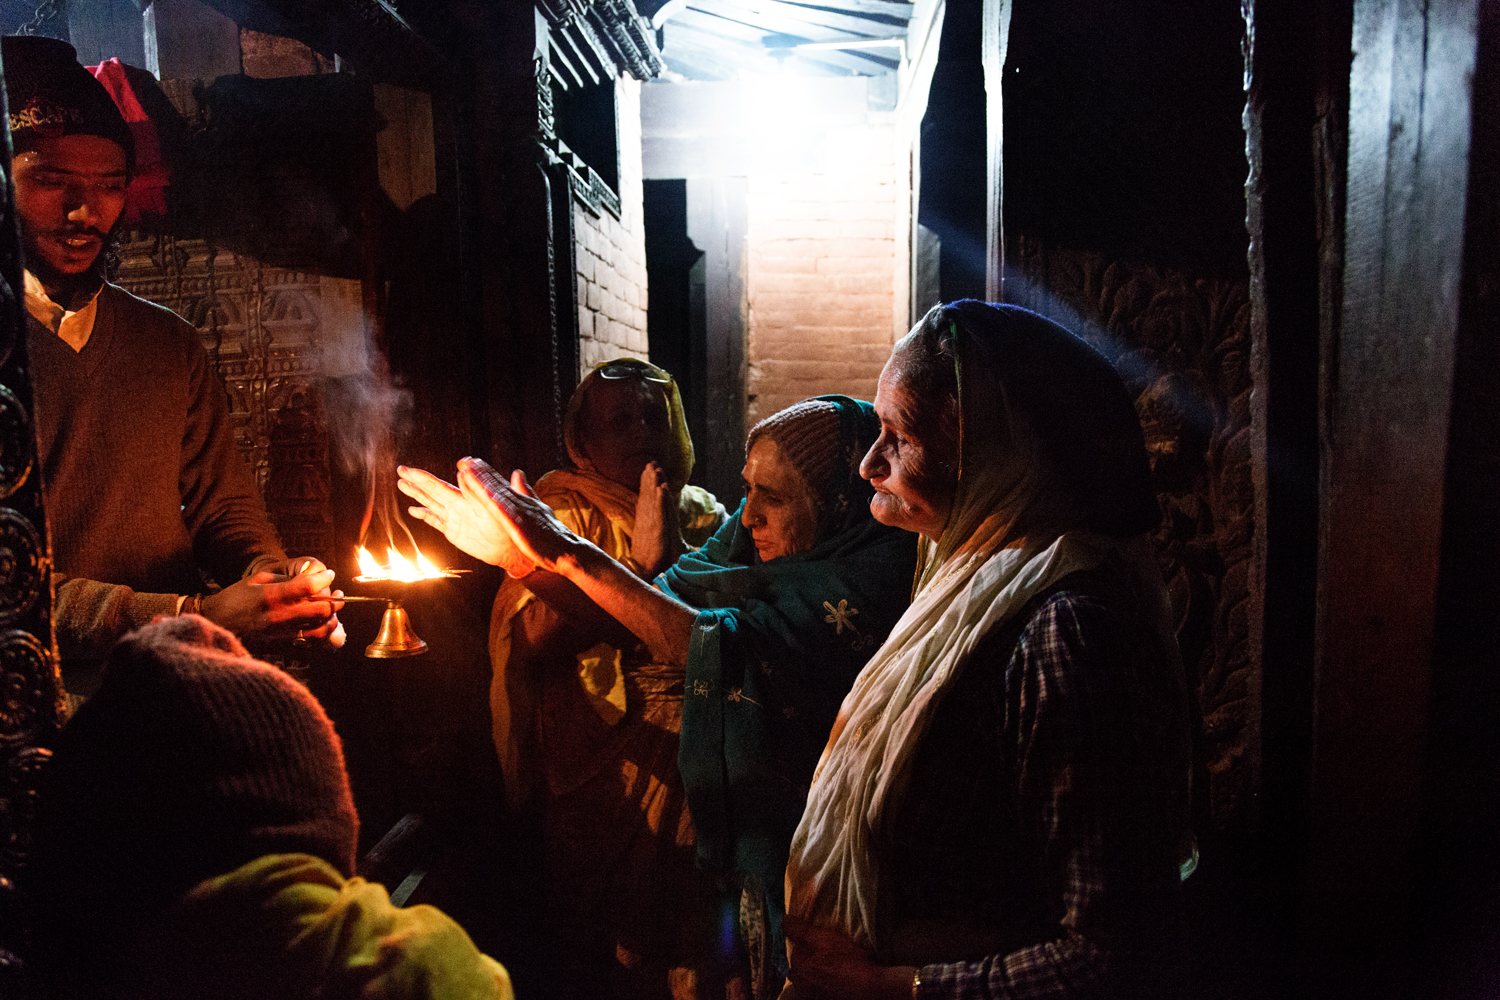 During evening Aarti after a period of prayer ceremonial fire is passed around to allow devotees to raise downturned hands to the flames to receive the flame's power, which they then press to their eyes and head, a purification and a blessing.